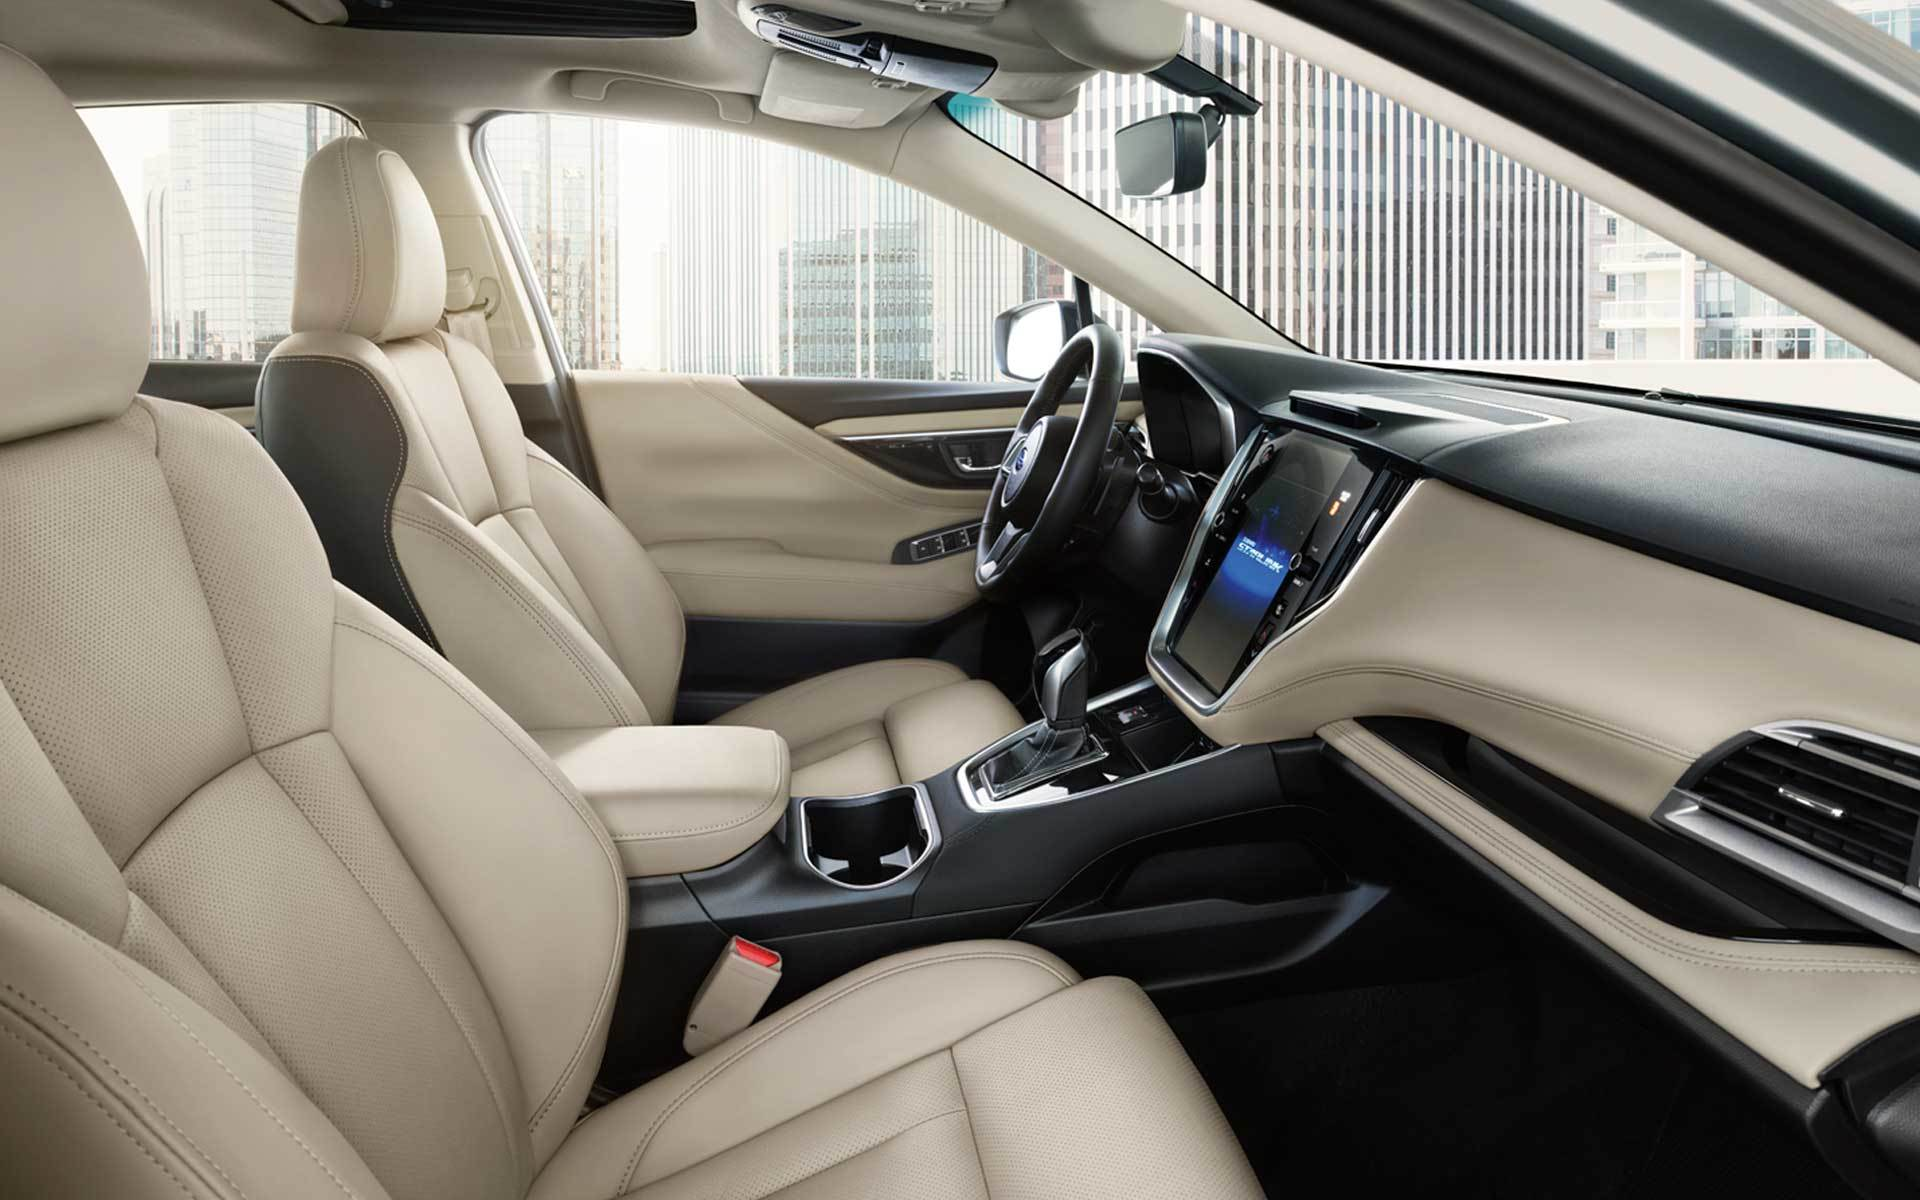 Subaru Image: Limited interior shown in Warm Ivory Leather